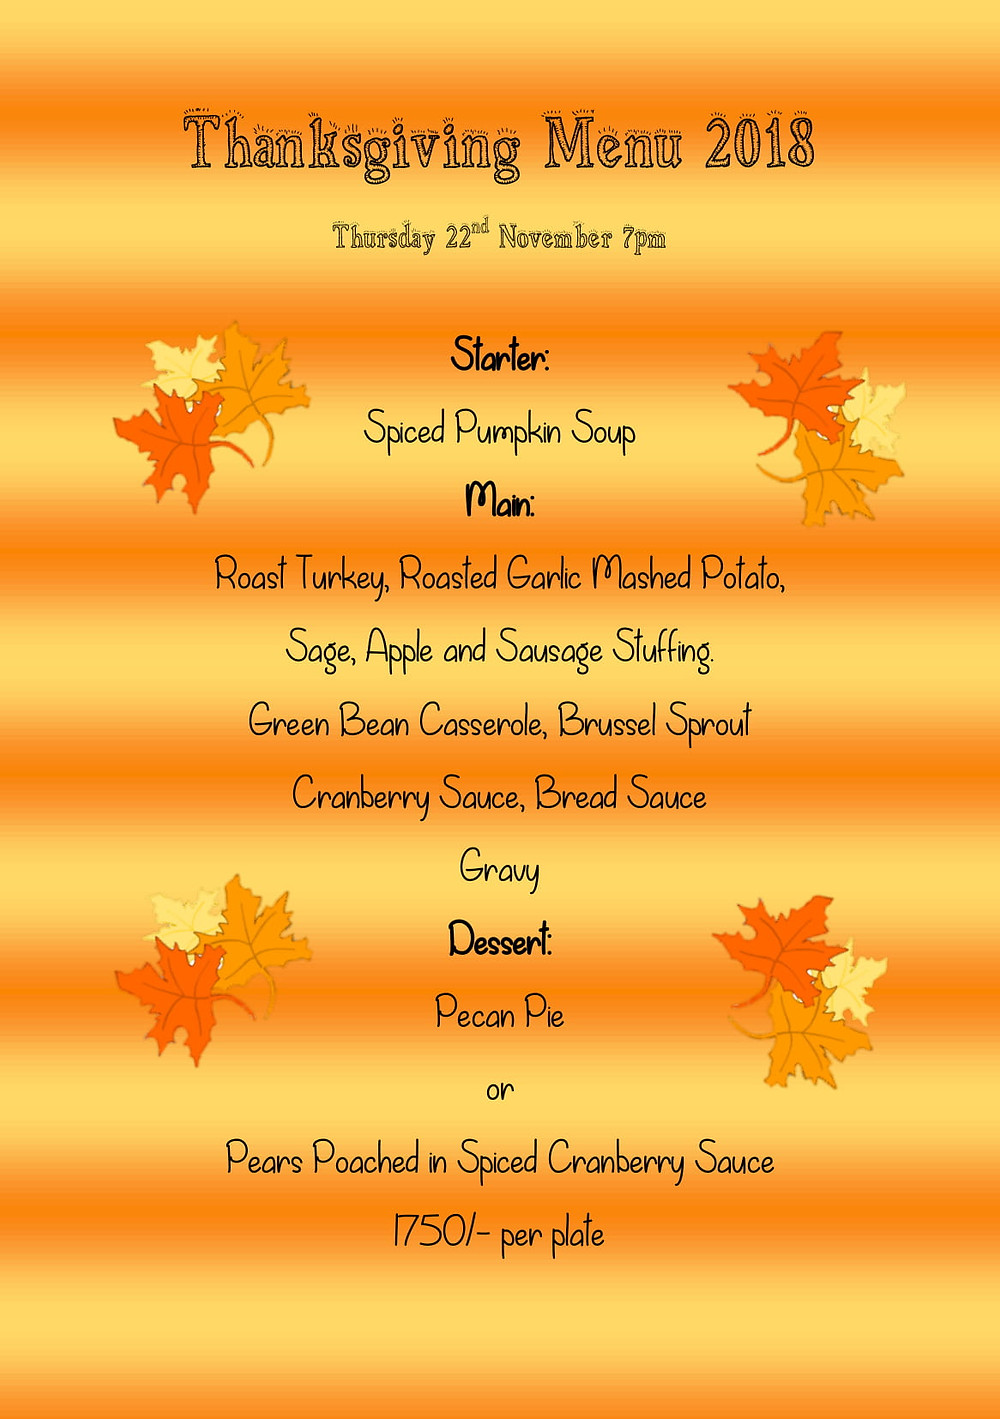 Thanksgiving Dinner at Piri Pirie's 22nd November from 7:30pm